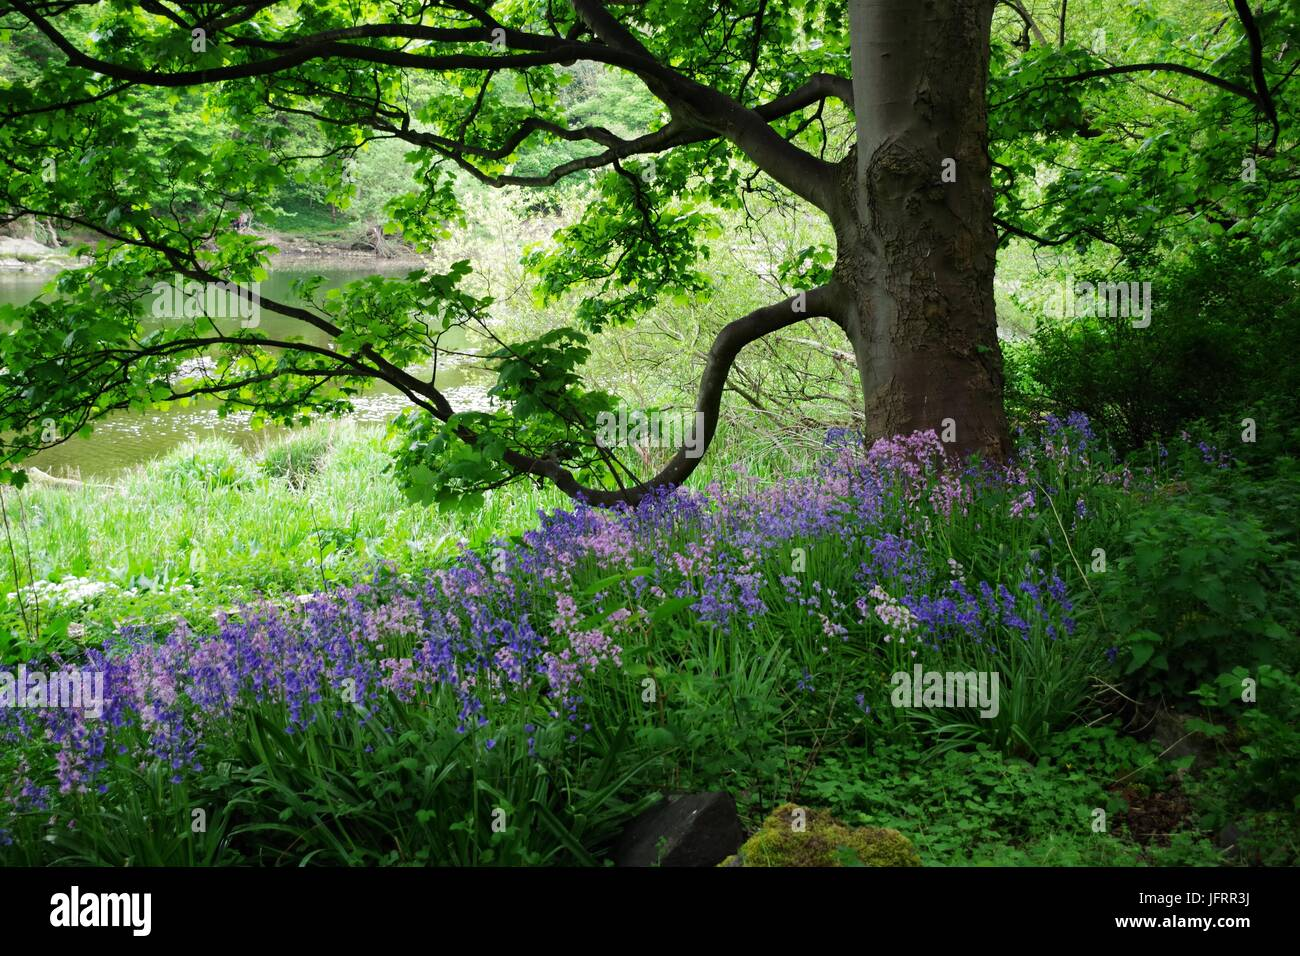 Wild Flowers River Bank Stock Photos Wild Flowers River Bank Stock